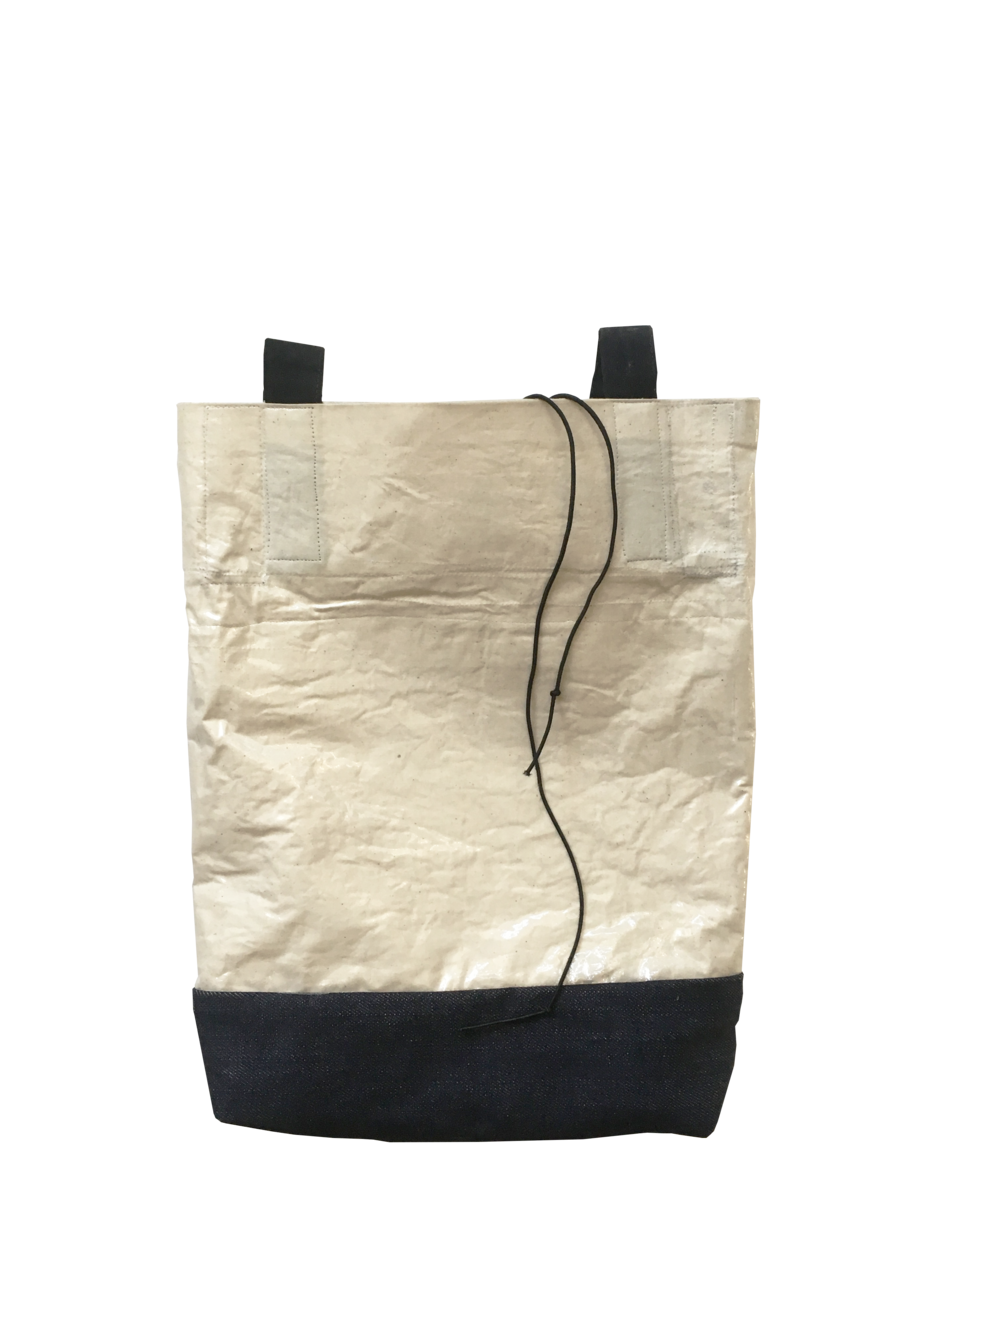 backpack8.png